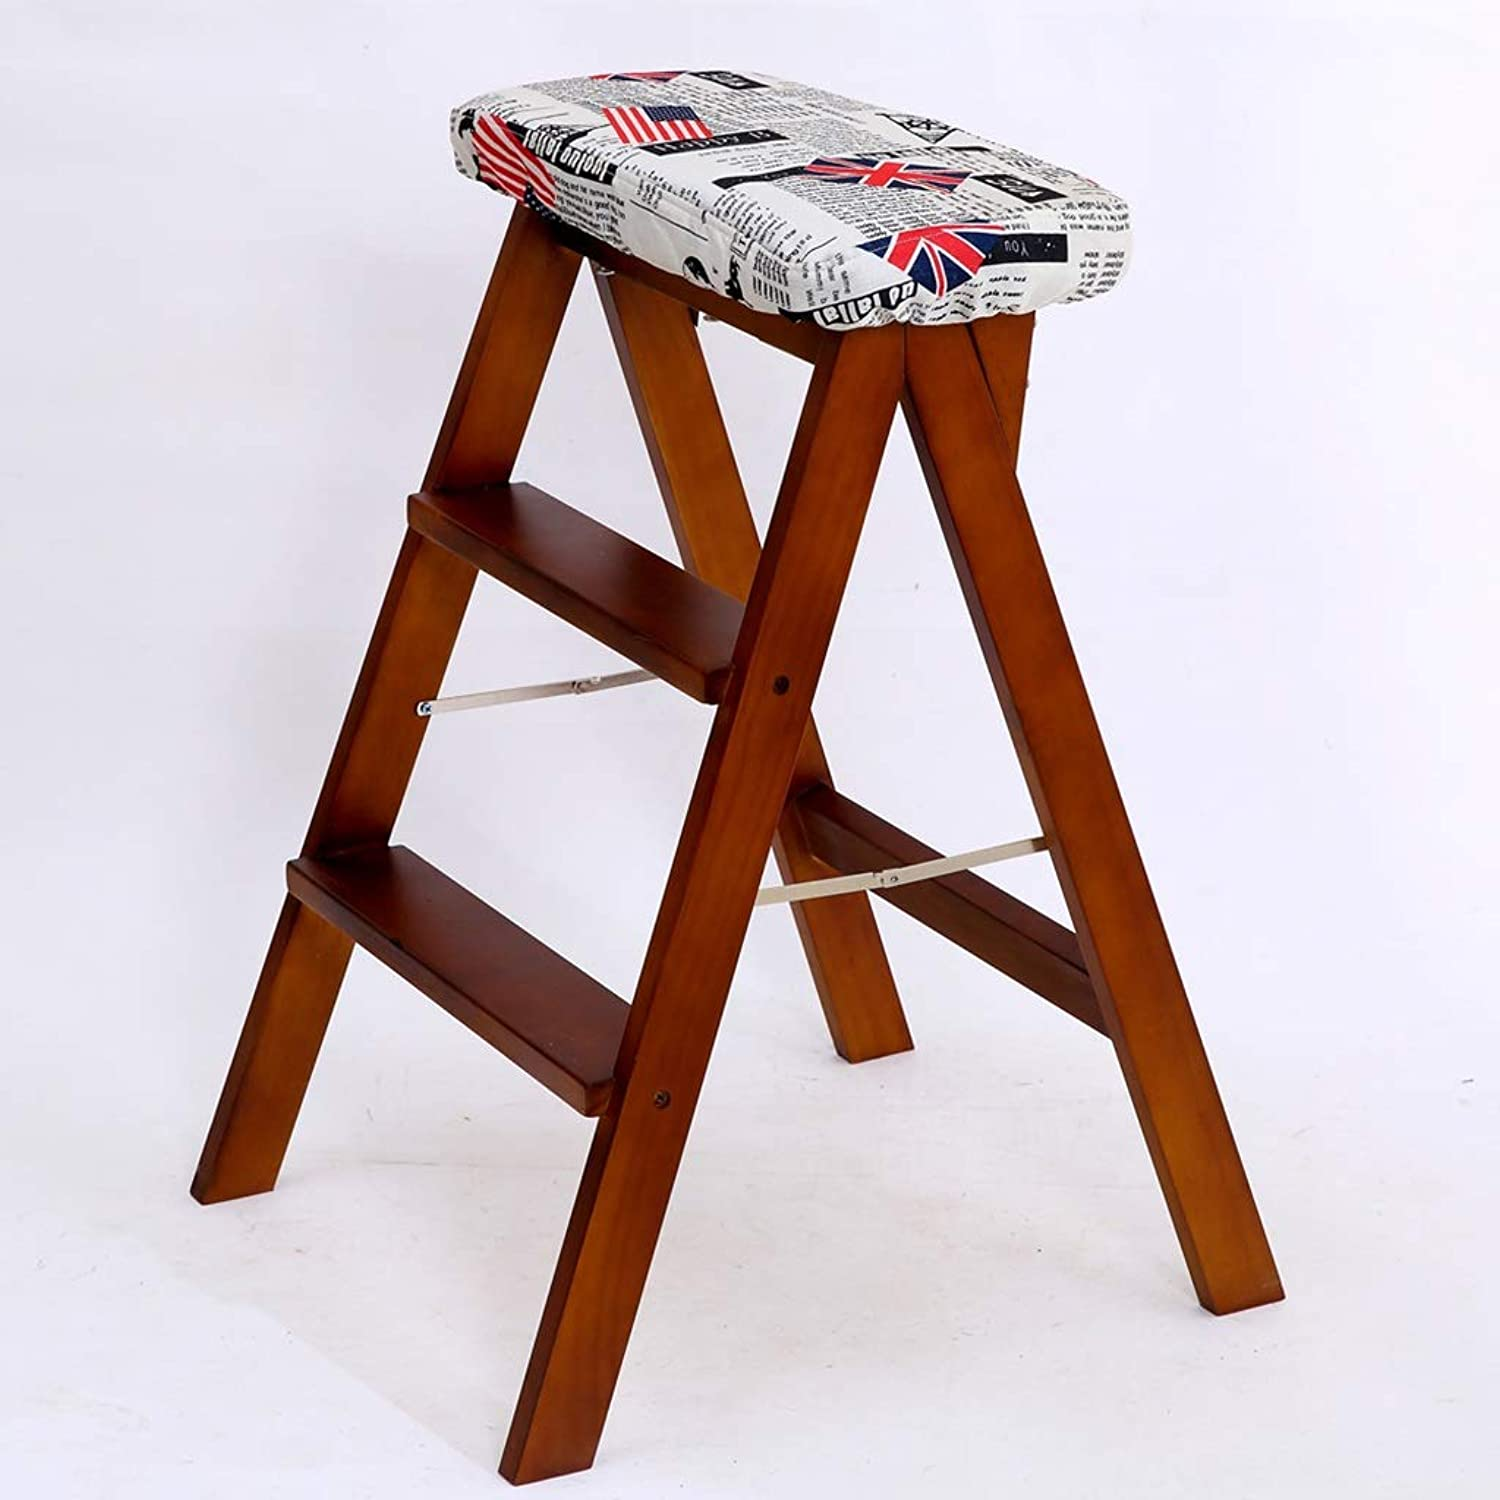 Solid Wood Creative Folding Stool Folding Step Stool Kitchen Stool Portable Stool Folding Household Bench high Stool (color   D)